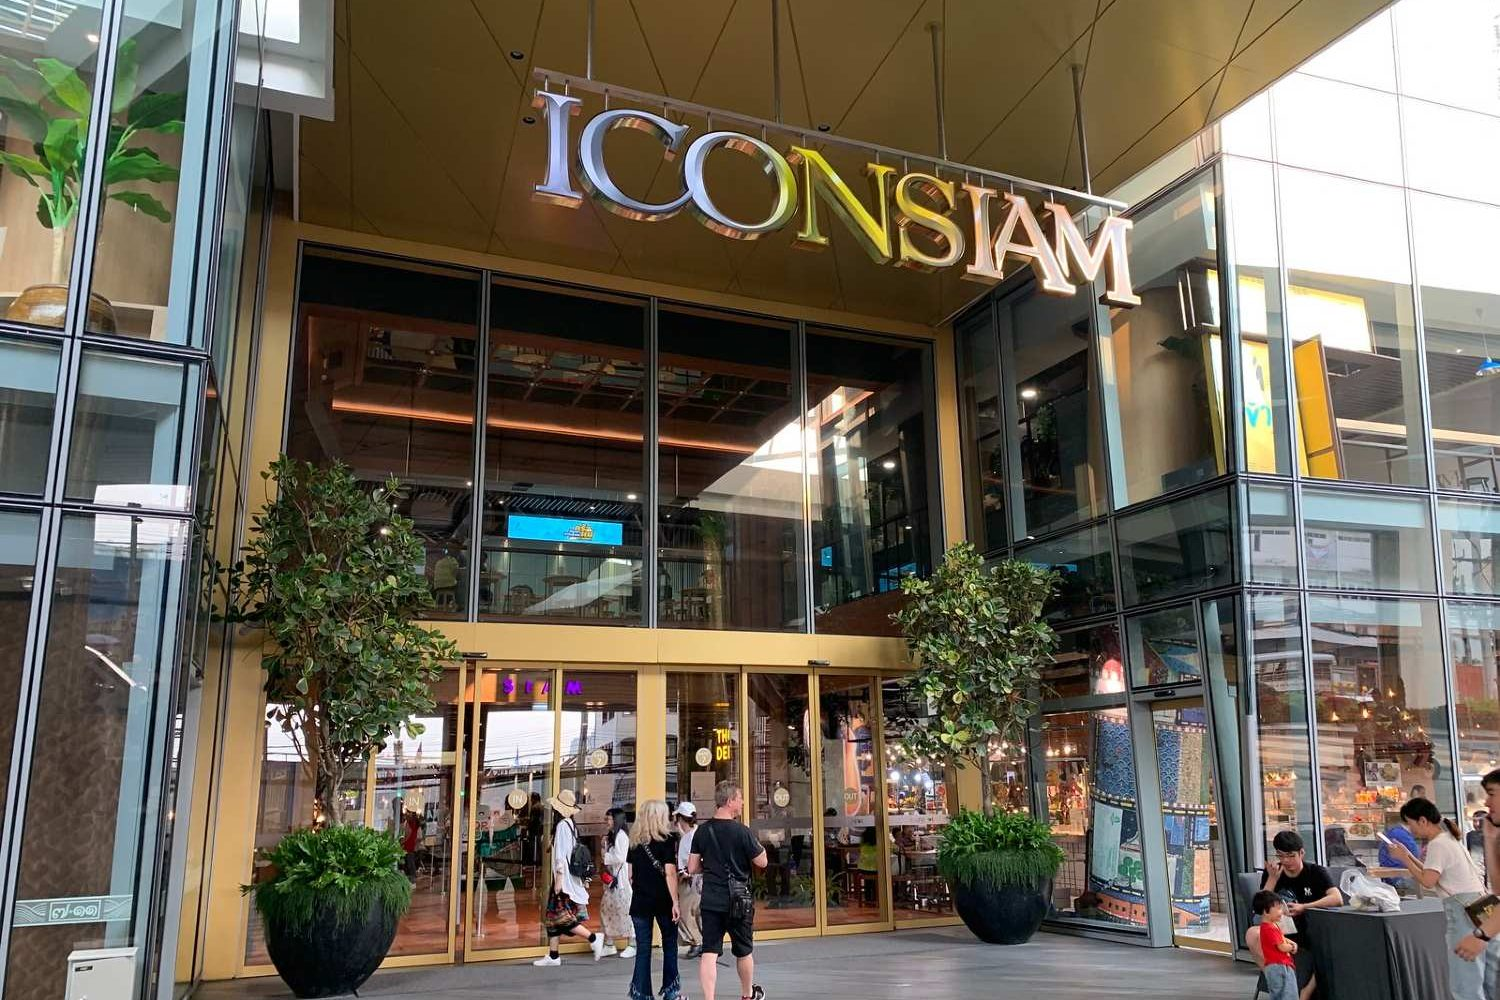 Main entrance ICONSIAM from the street side